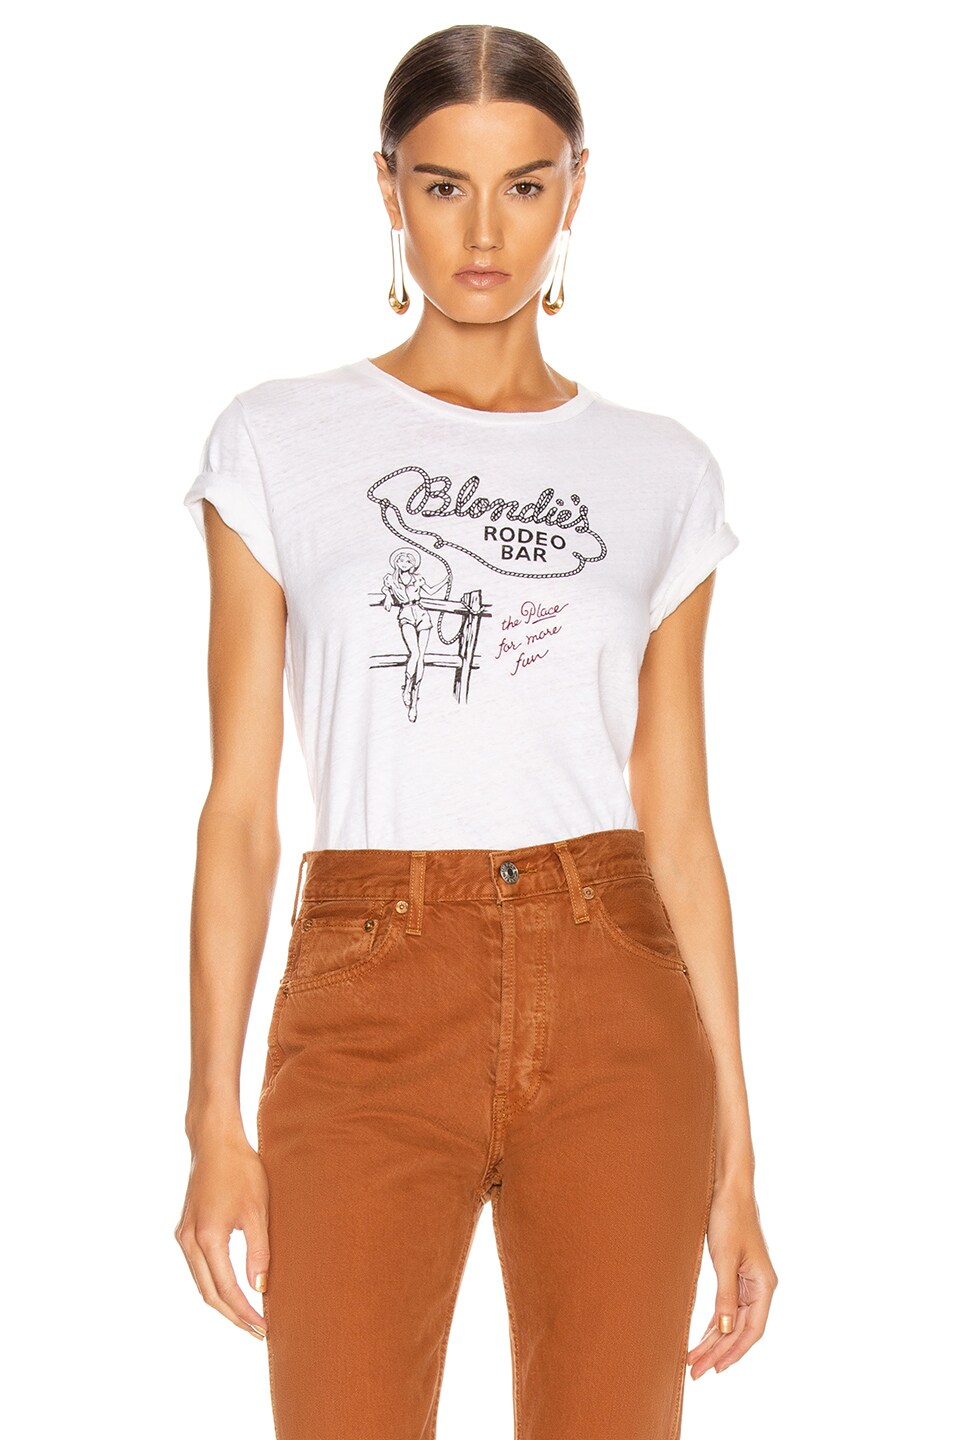 Image 1 of RE/DONE Classic Tee Blondies Rodeo in Vintage White